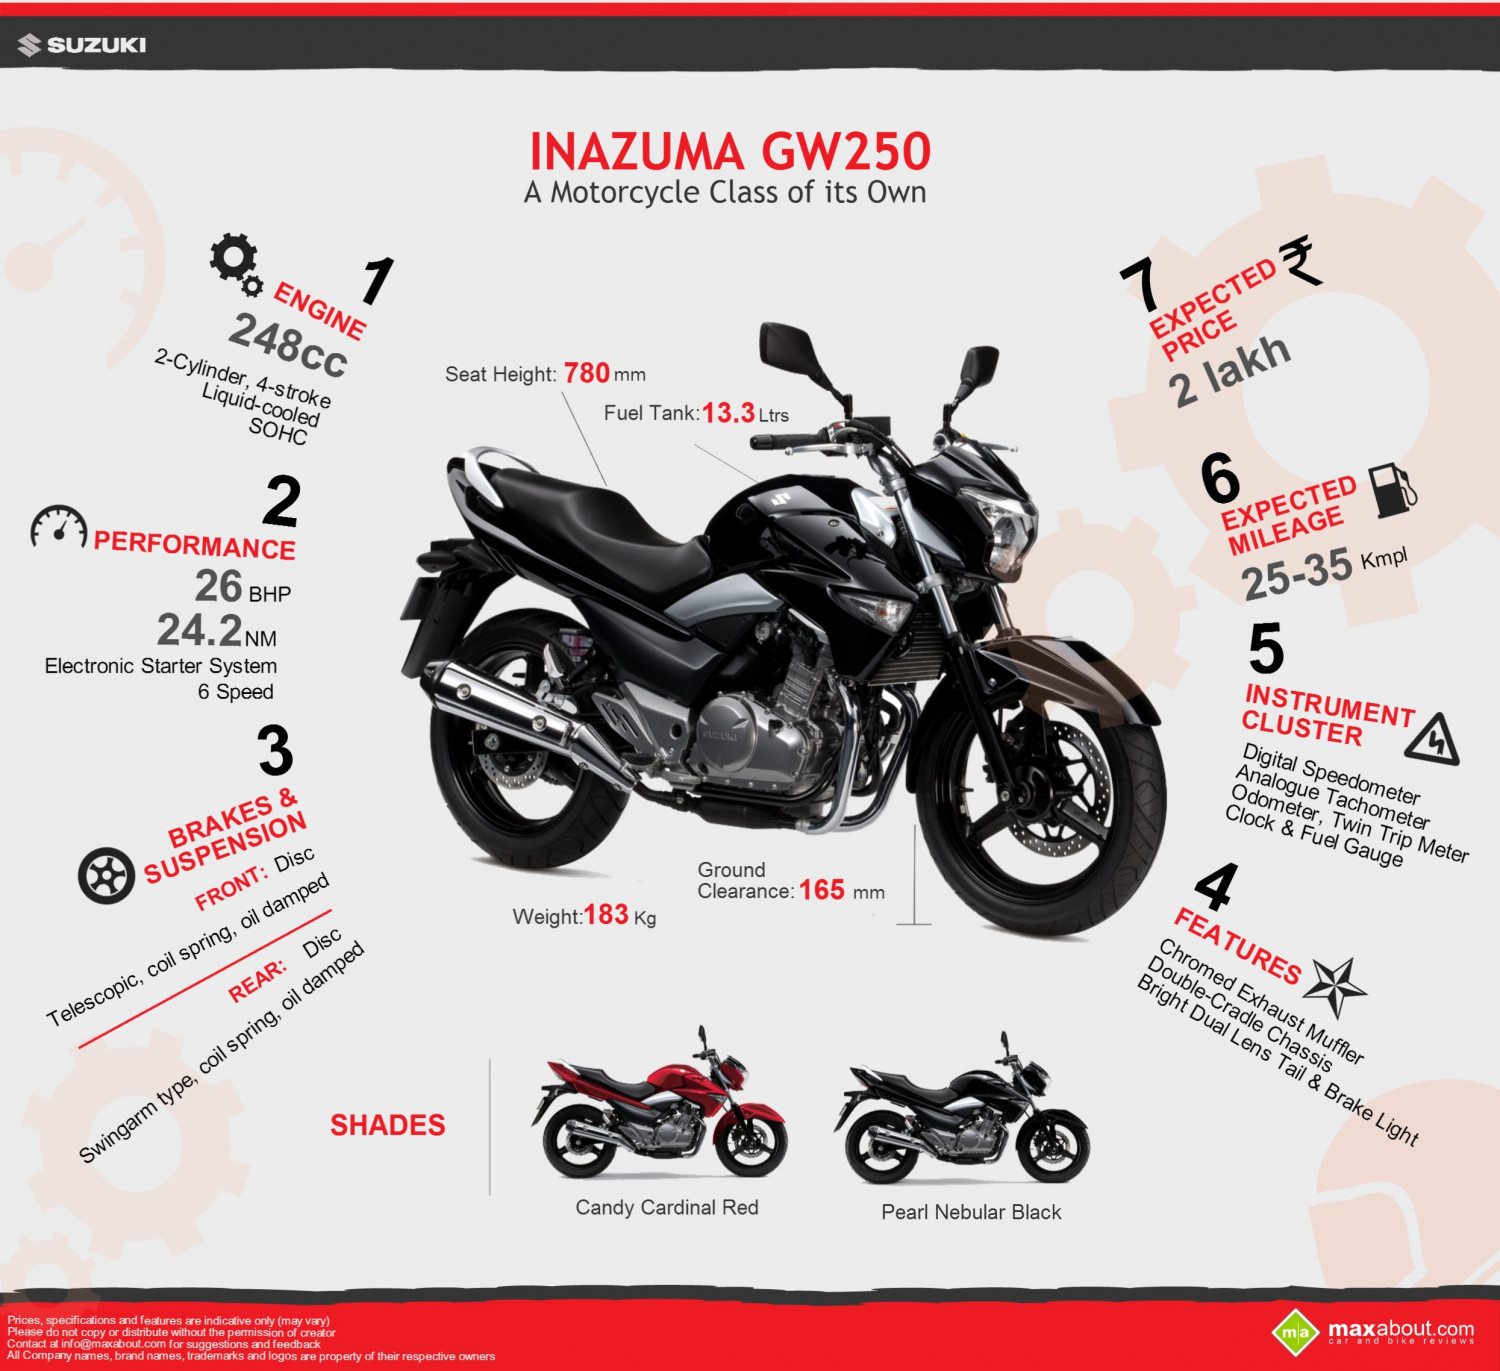 Suzuki Inazuma GW250: Specifications and Price Infographic